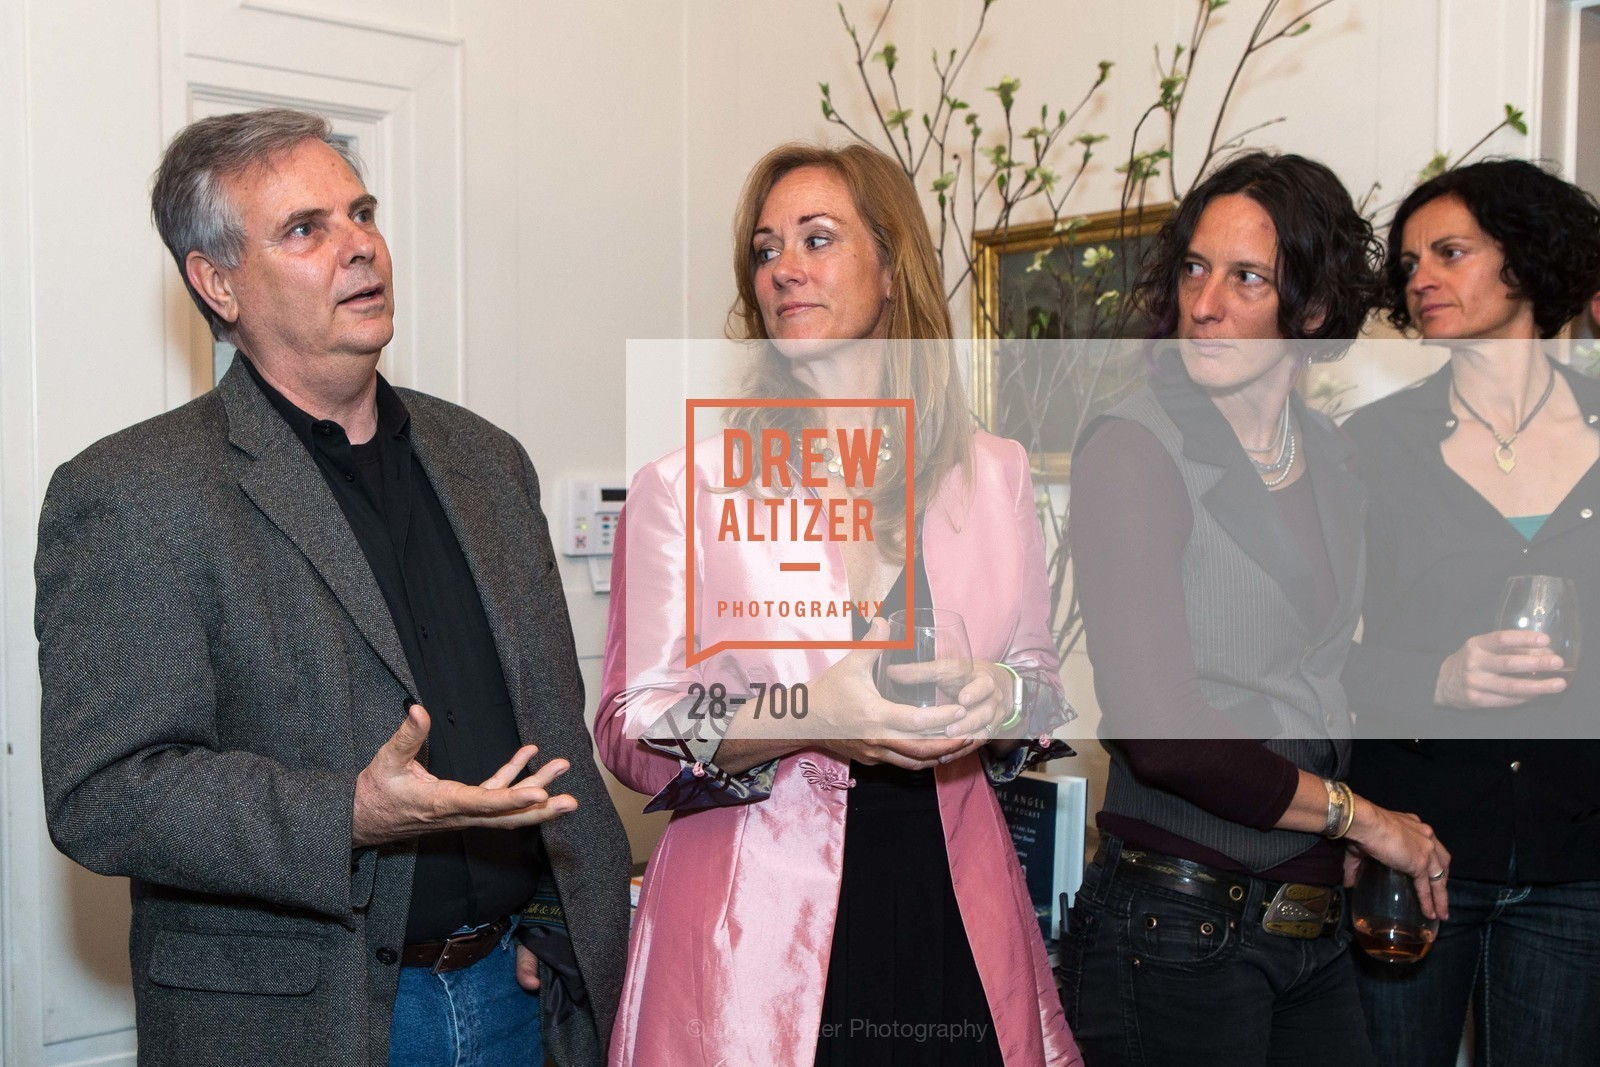 Greg Schneider, Sara Mertz, SUKEY FORBES' Book Signing, US, May 7th, 2015,Drew Altizer, Drew Altizer Photography, full-service agency, private events, San Francisco photographer, photographer california